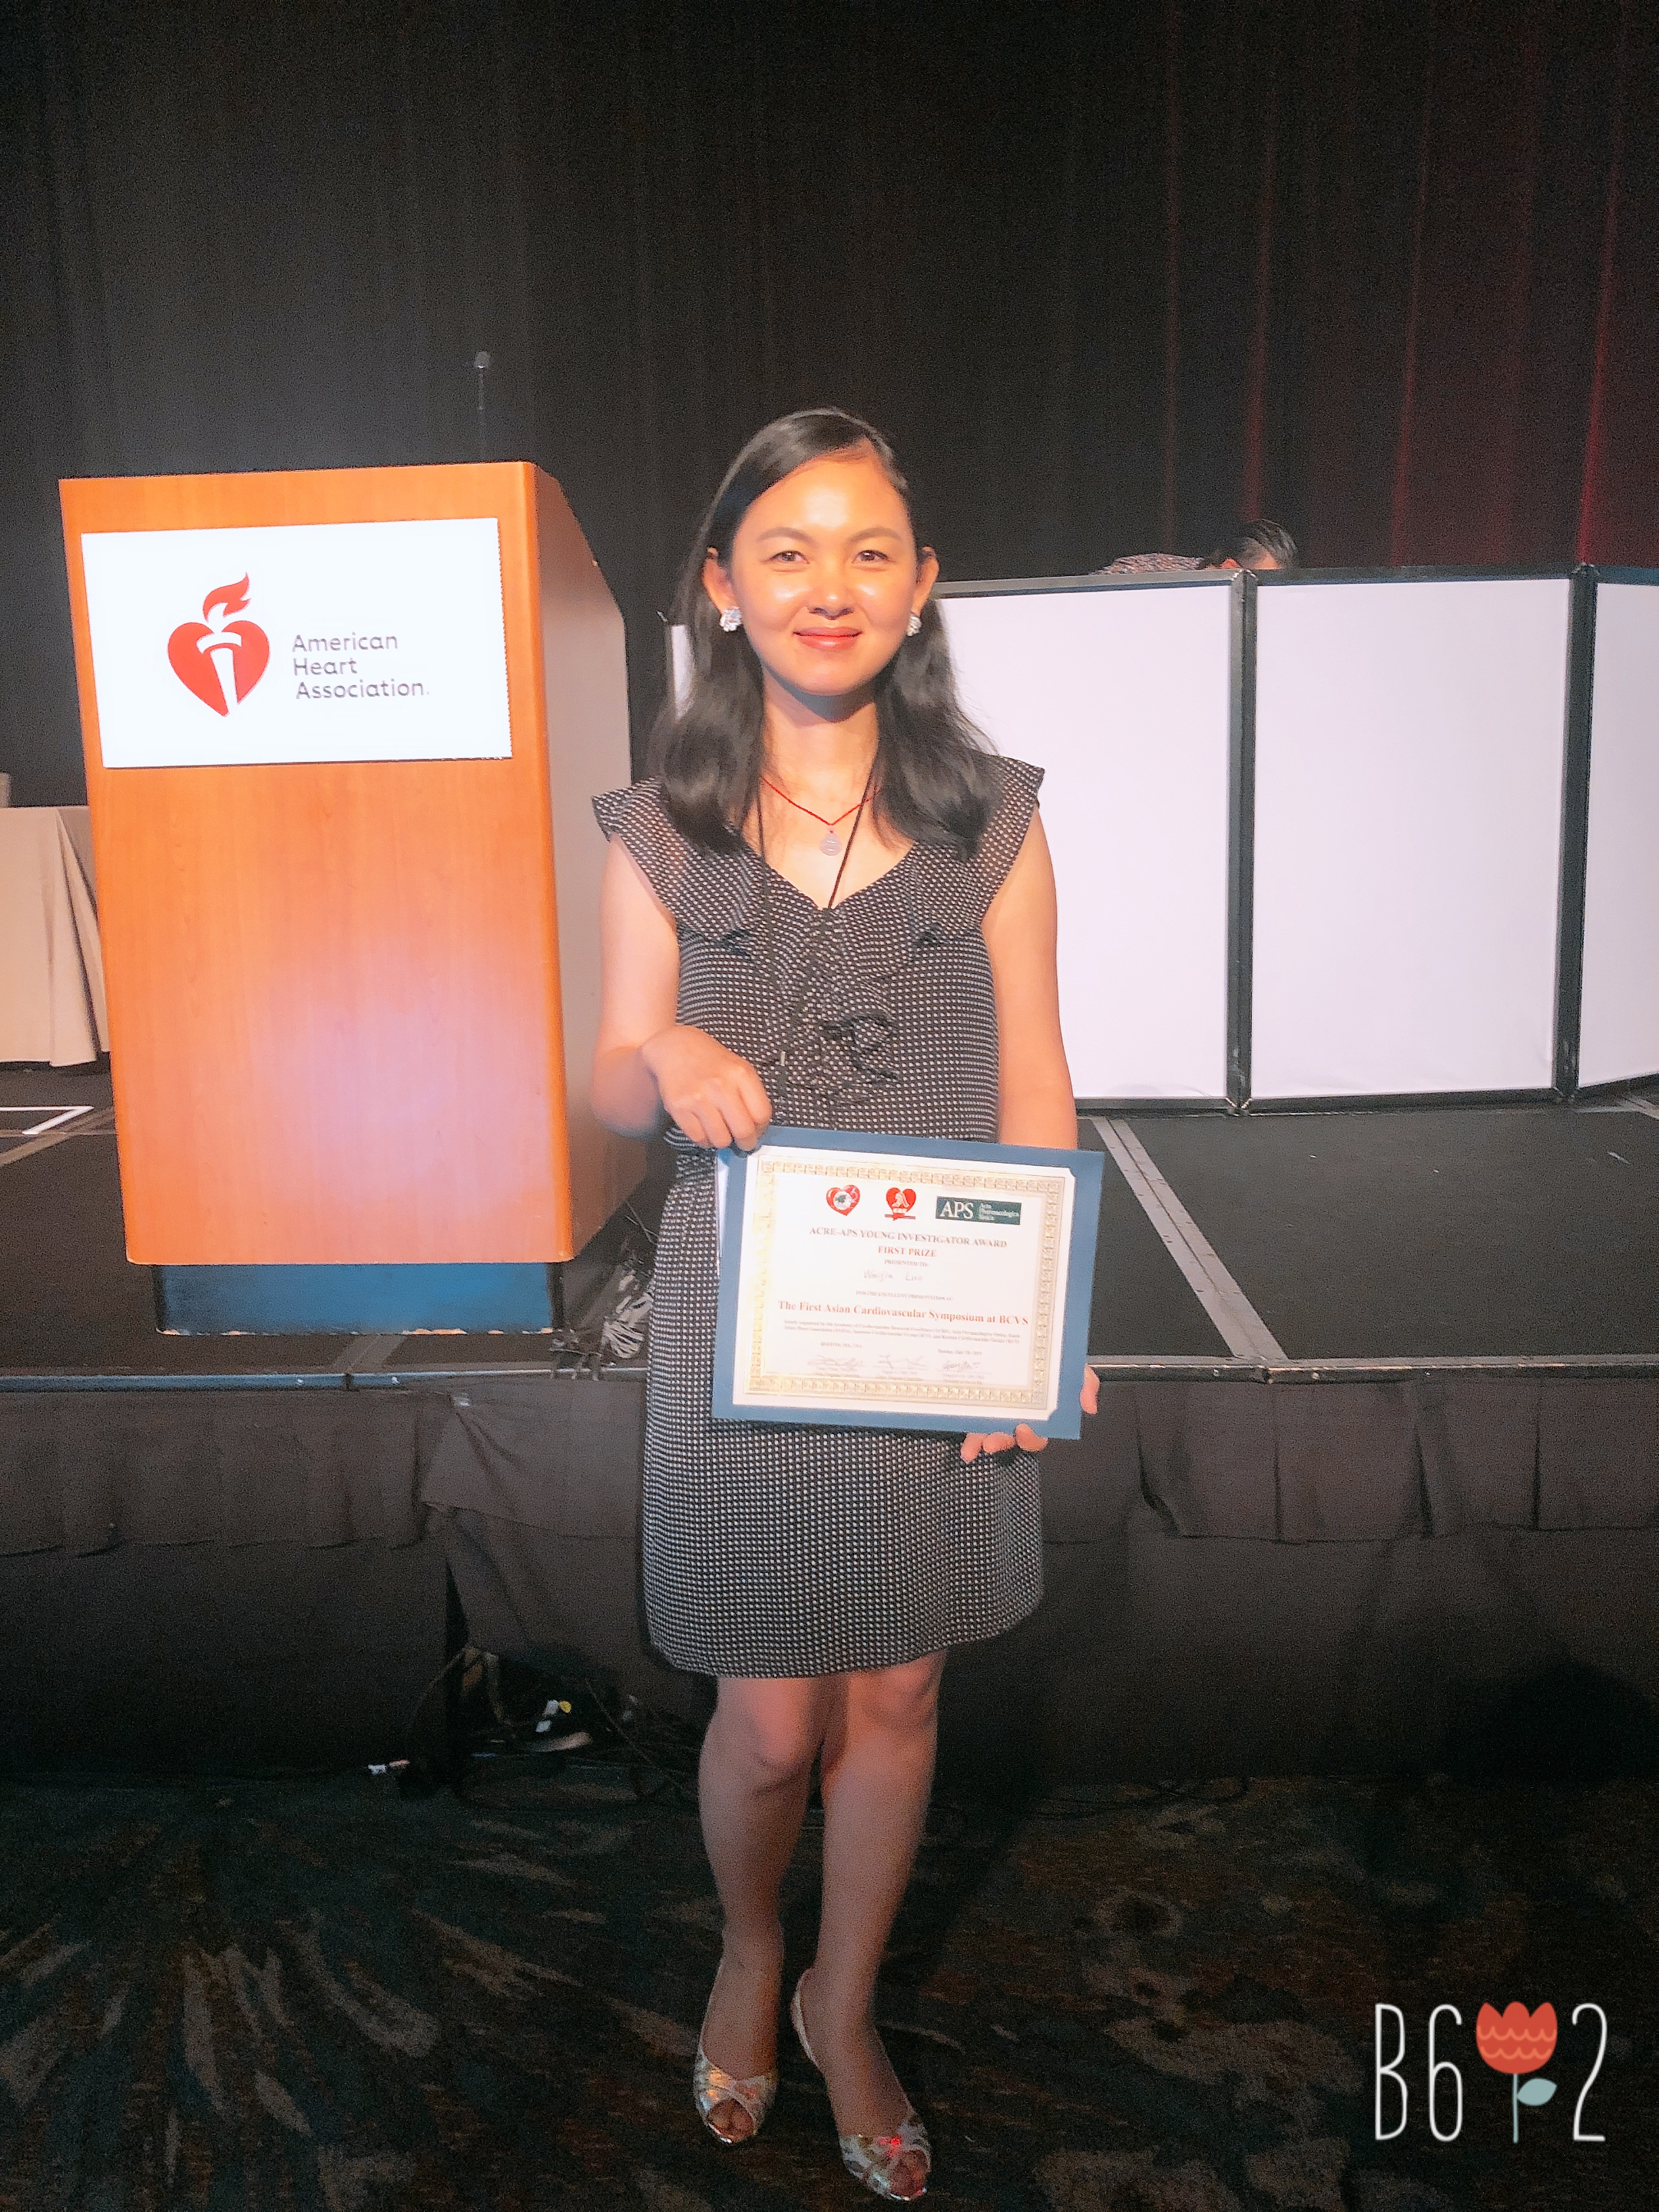 Weijia Luo won 1st place of Young Investigator Award - AHA